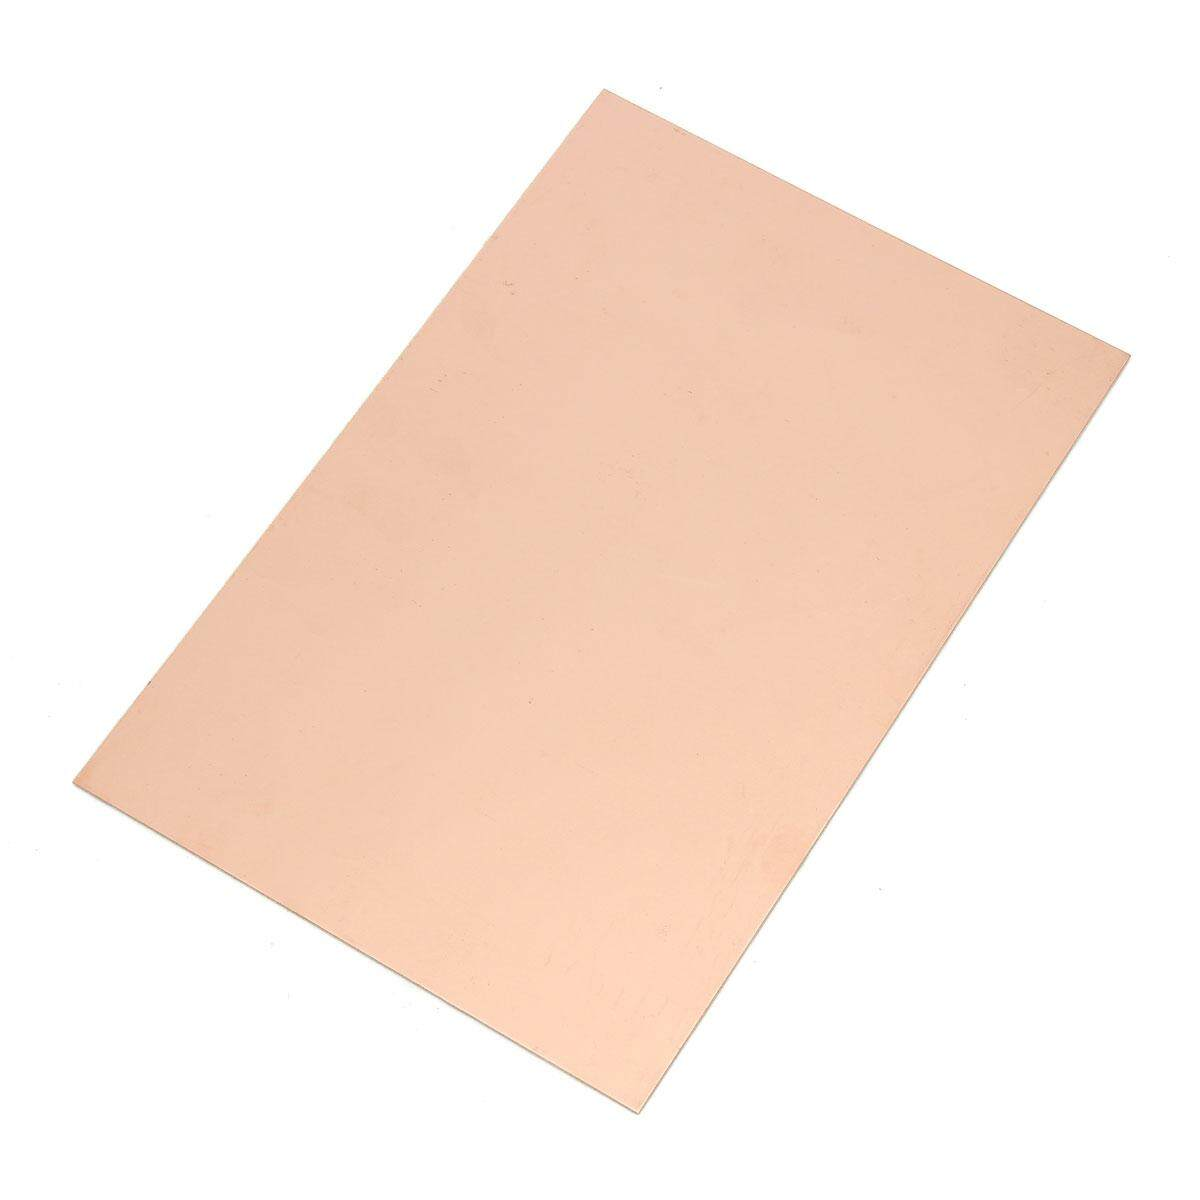 The Price Of 10 Pcs 8x12cm Double Side Prototype Diy Pcb Tinned Paper Copper Universal Experiment Matrix Circuit Board 1 Clad Laminate Boards Fr4 200mm X 300mm Intl